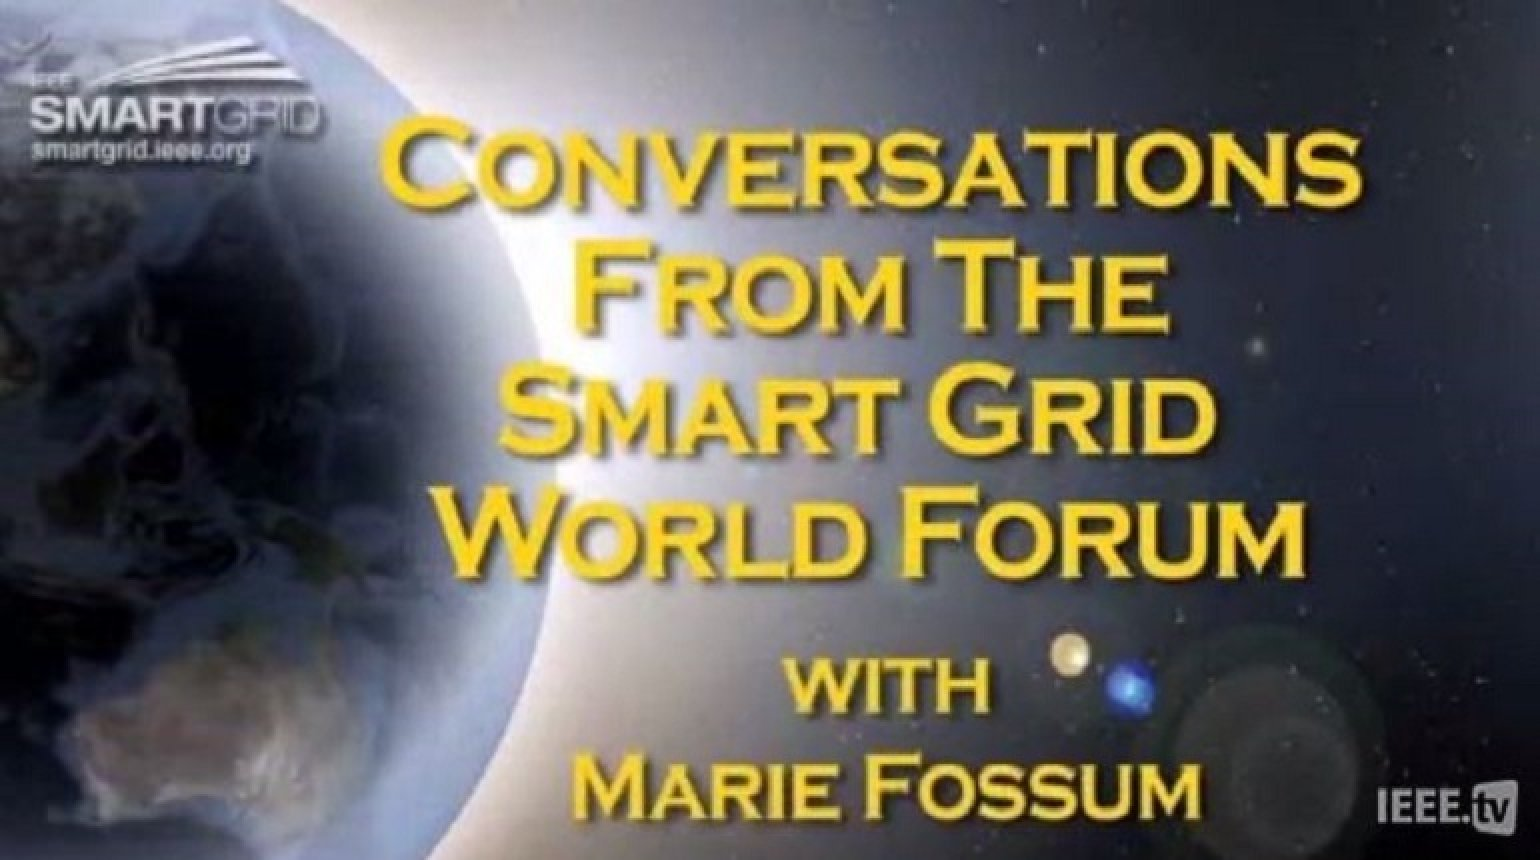 Stockholm Seaport Program and the Smart Grid: Marie Fossum